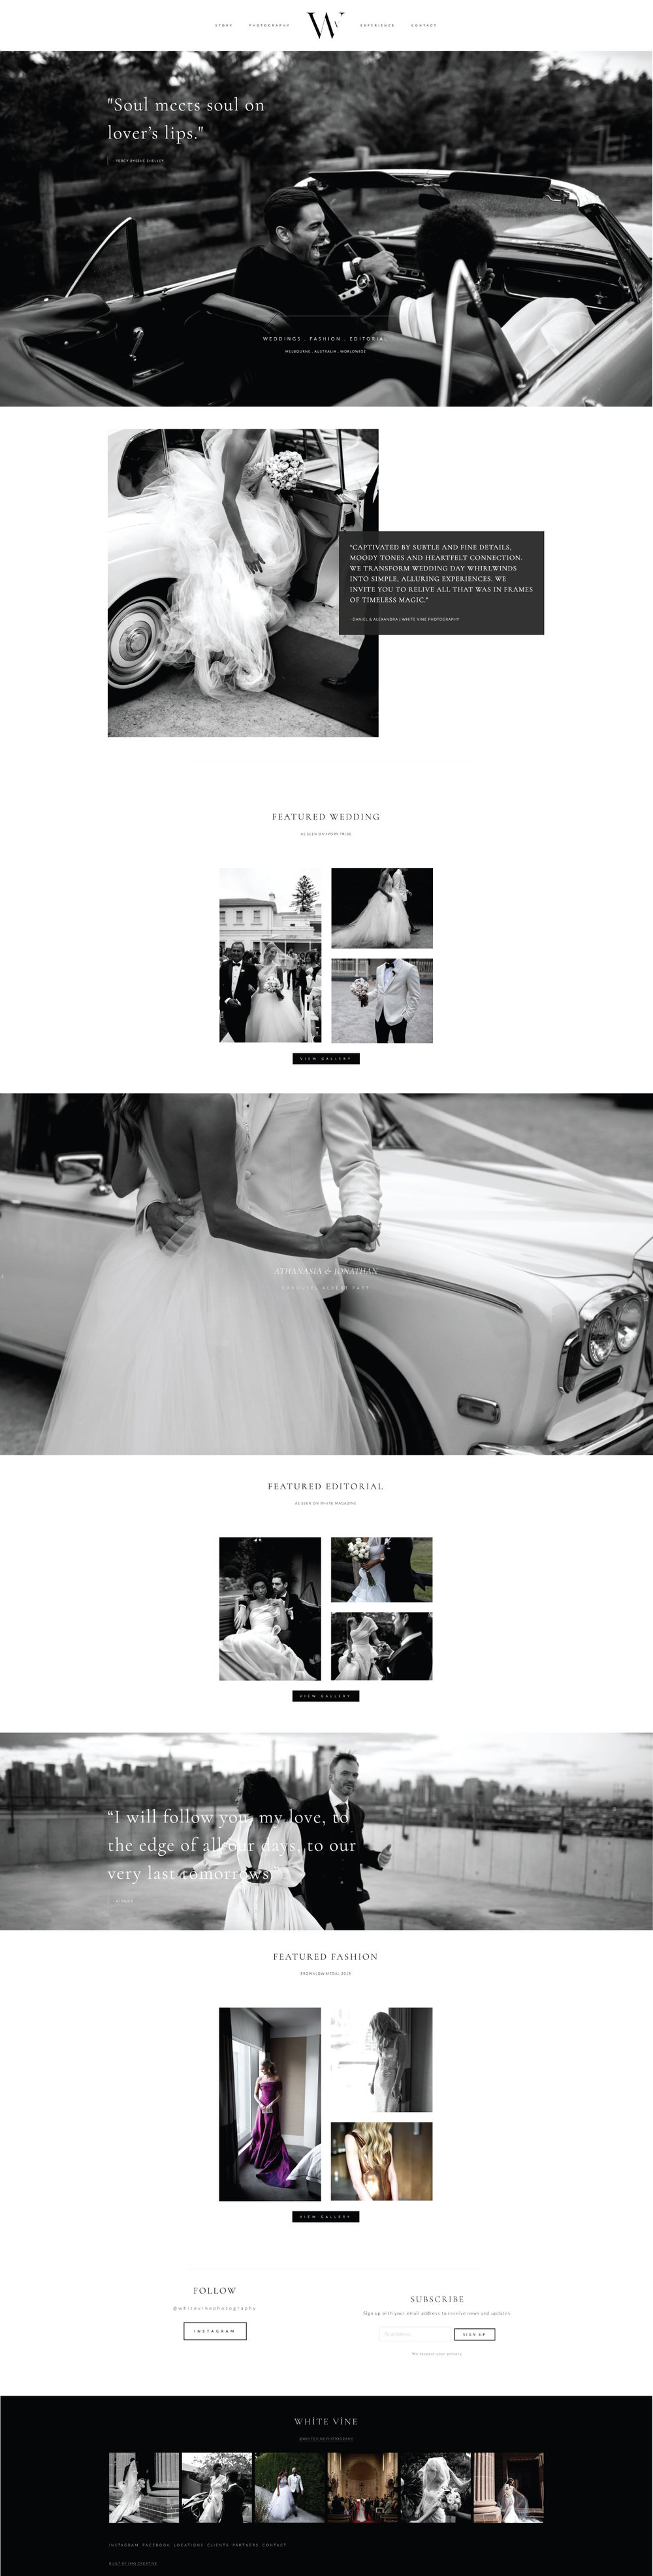 IMO-CREATIVE-Branding-and-Squarespace-Website-Design-Melbourne-White-Vine-Photography---wedding-Photographer.jpg